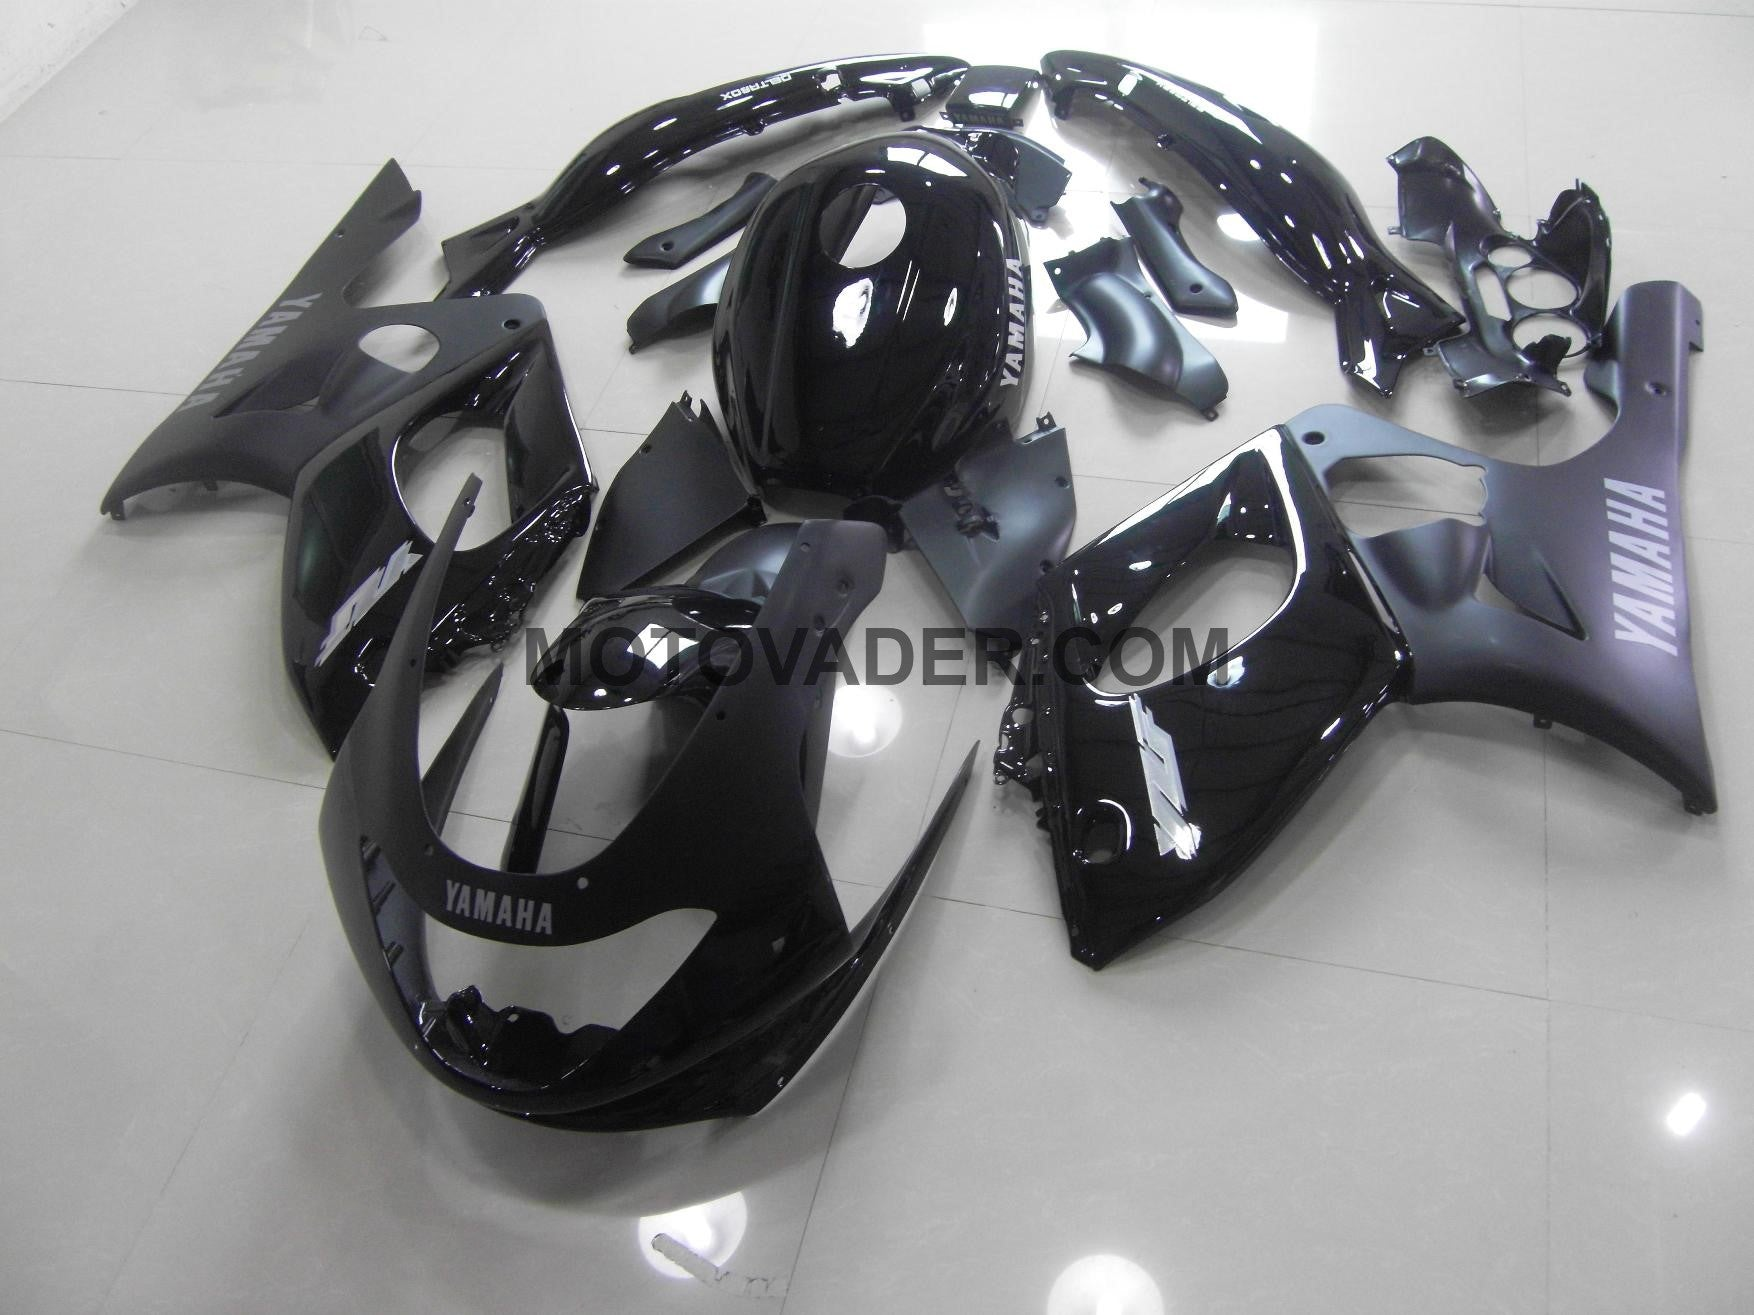 Yamaha YZF 600R 1999-2007 Matt &Gloss Black  Fairing